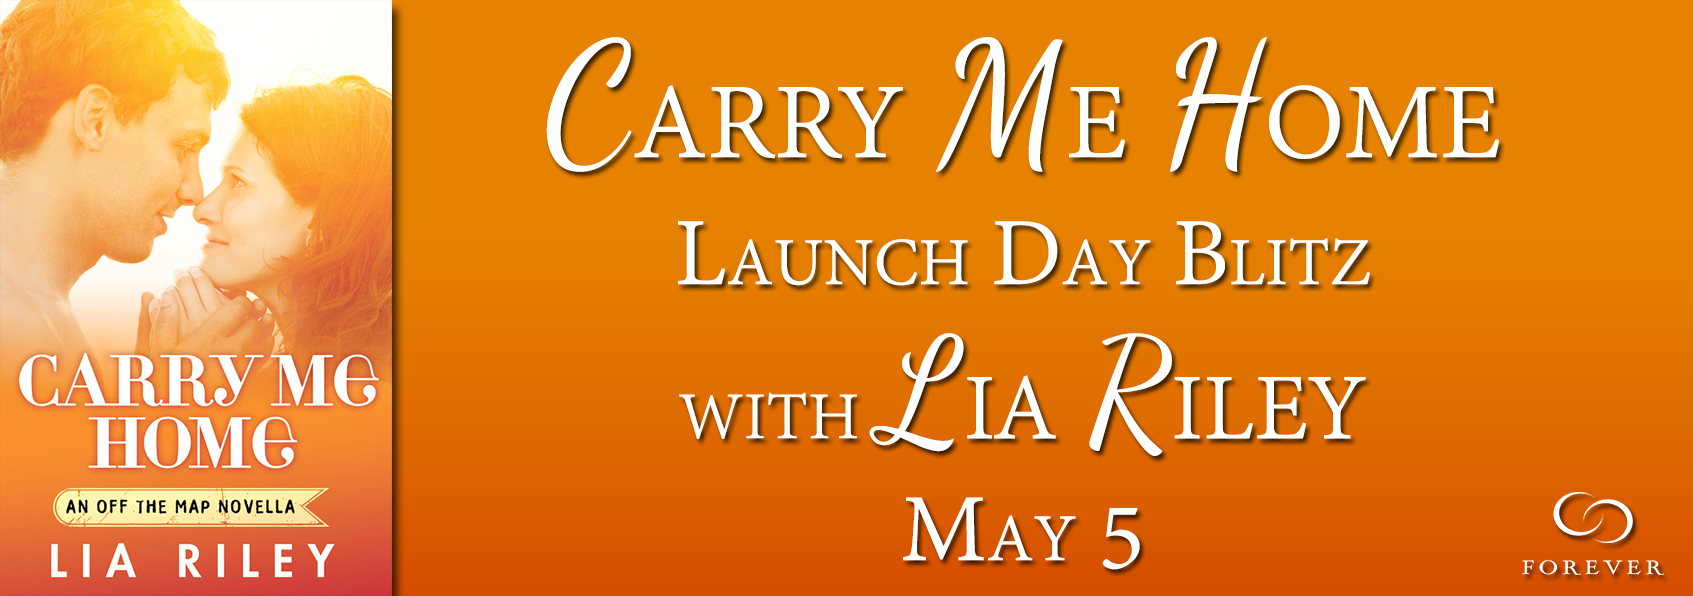 #Giveaway Excerpt CARRY ME HOME by LIA RILEY @LiaRileyWrites #ForeverRomance